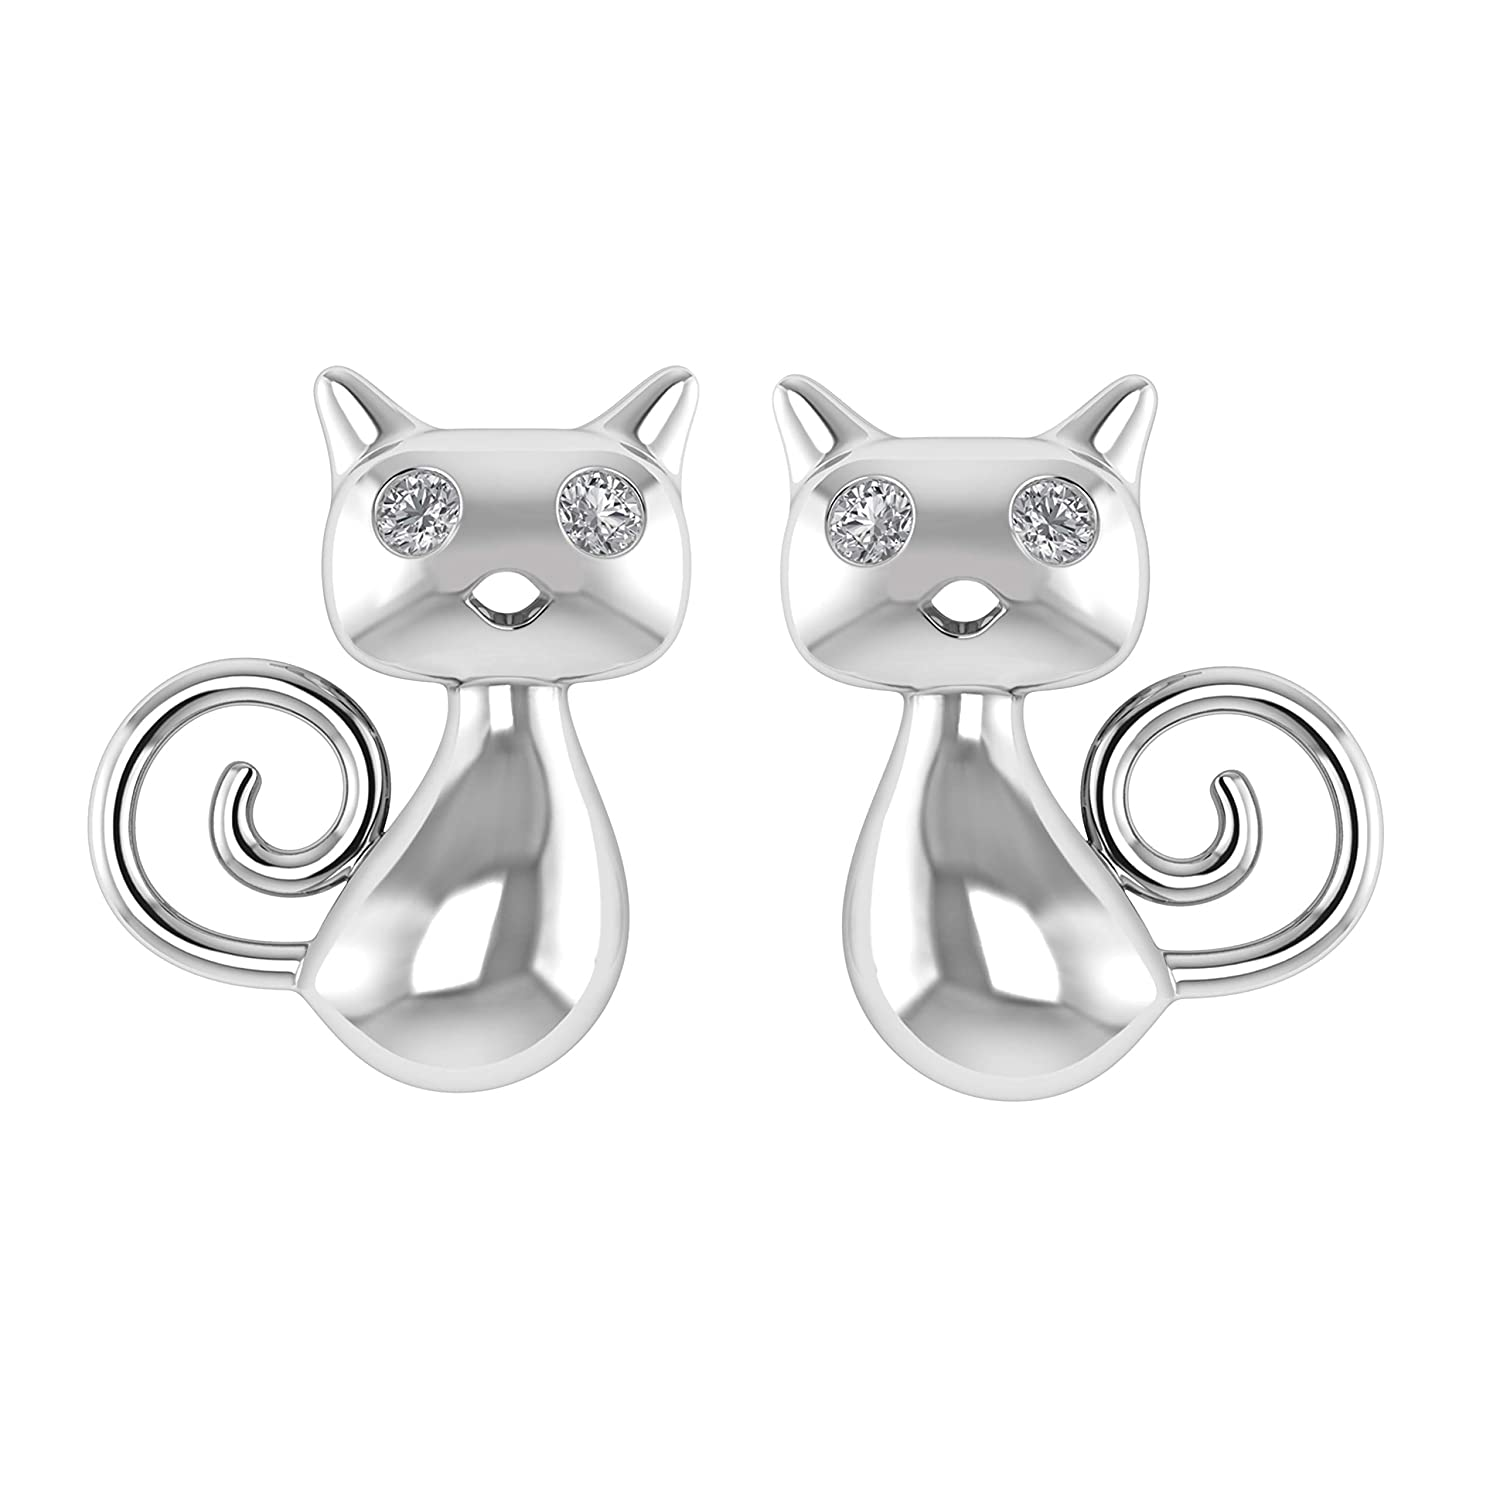 14K White Gold Fn 925 Sterling Silver 0.05 Ct Genuine Diamond Curly-Tail Kitty Stud Earrings W//Screw Back I1-I2//G-H